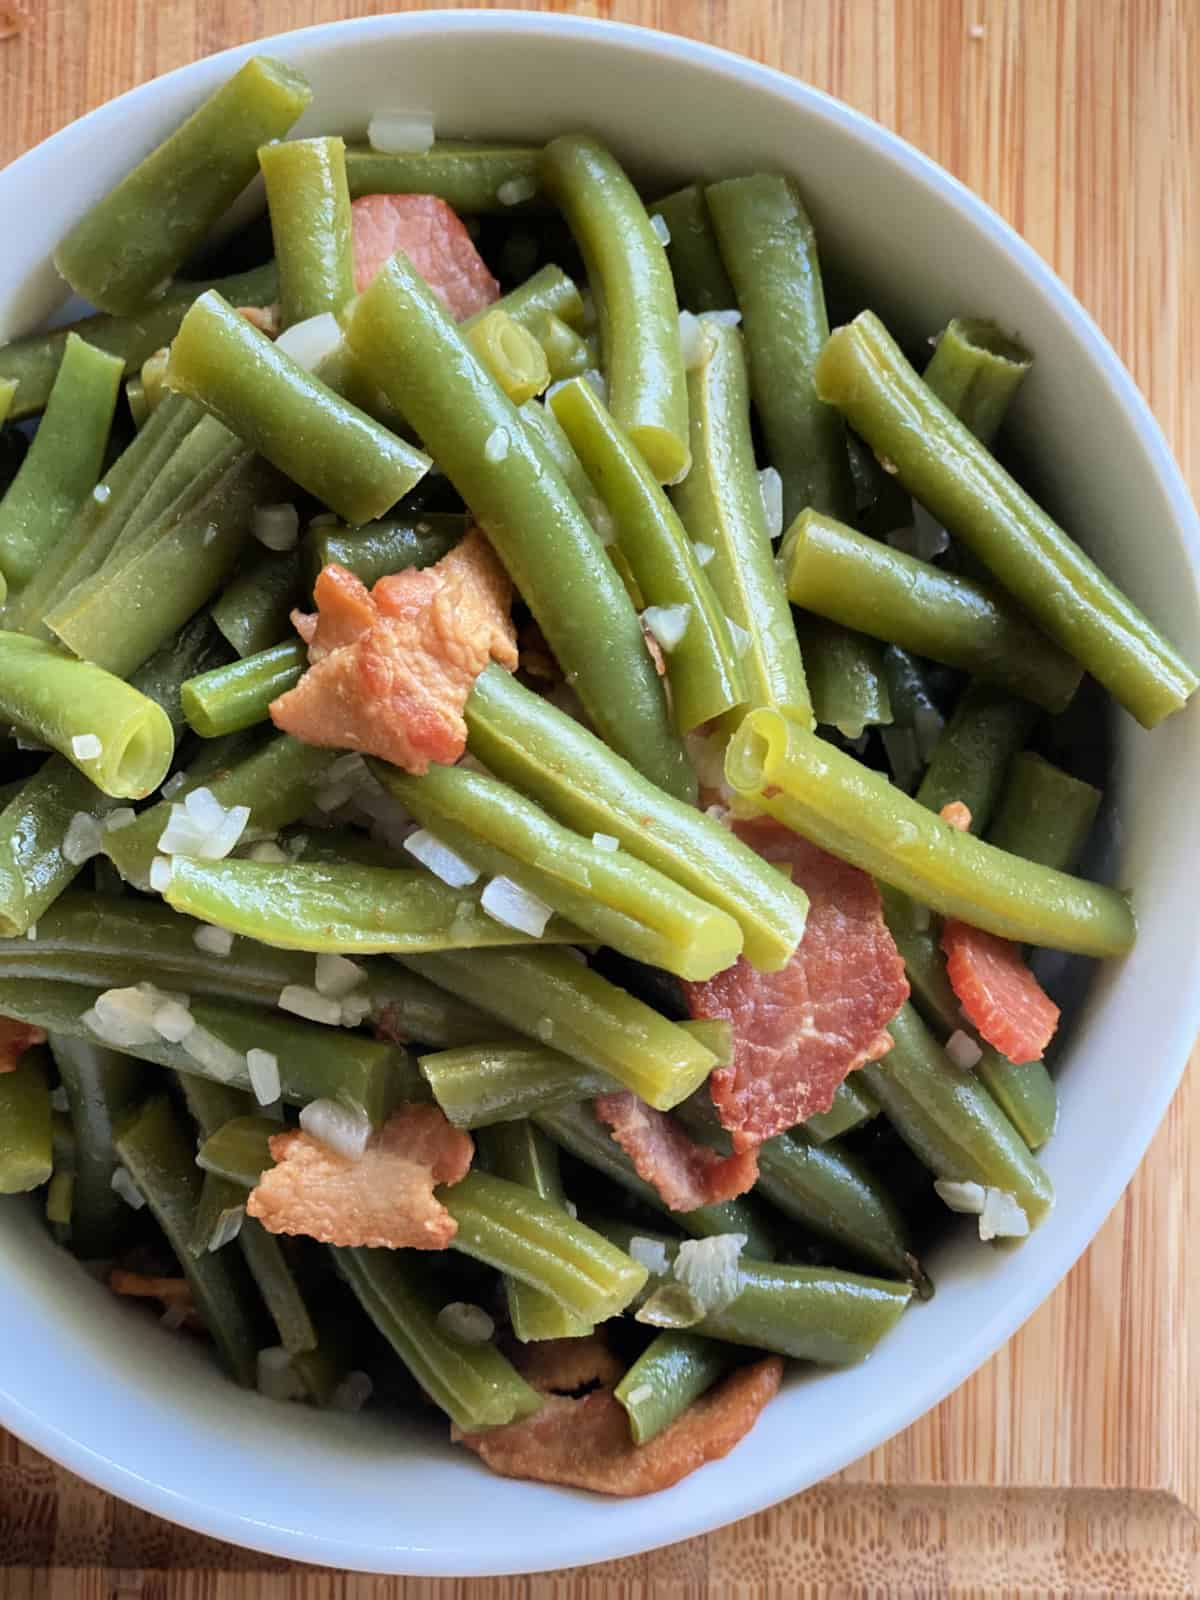 Top view of green beans with bacon and onions on a wood cutting board.